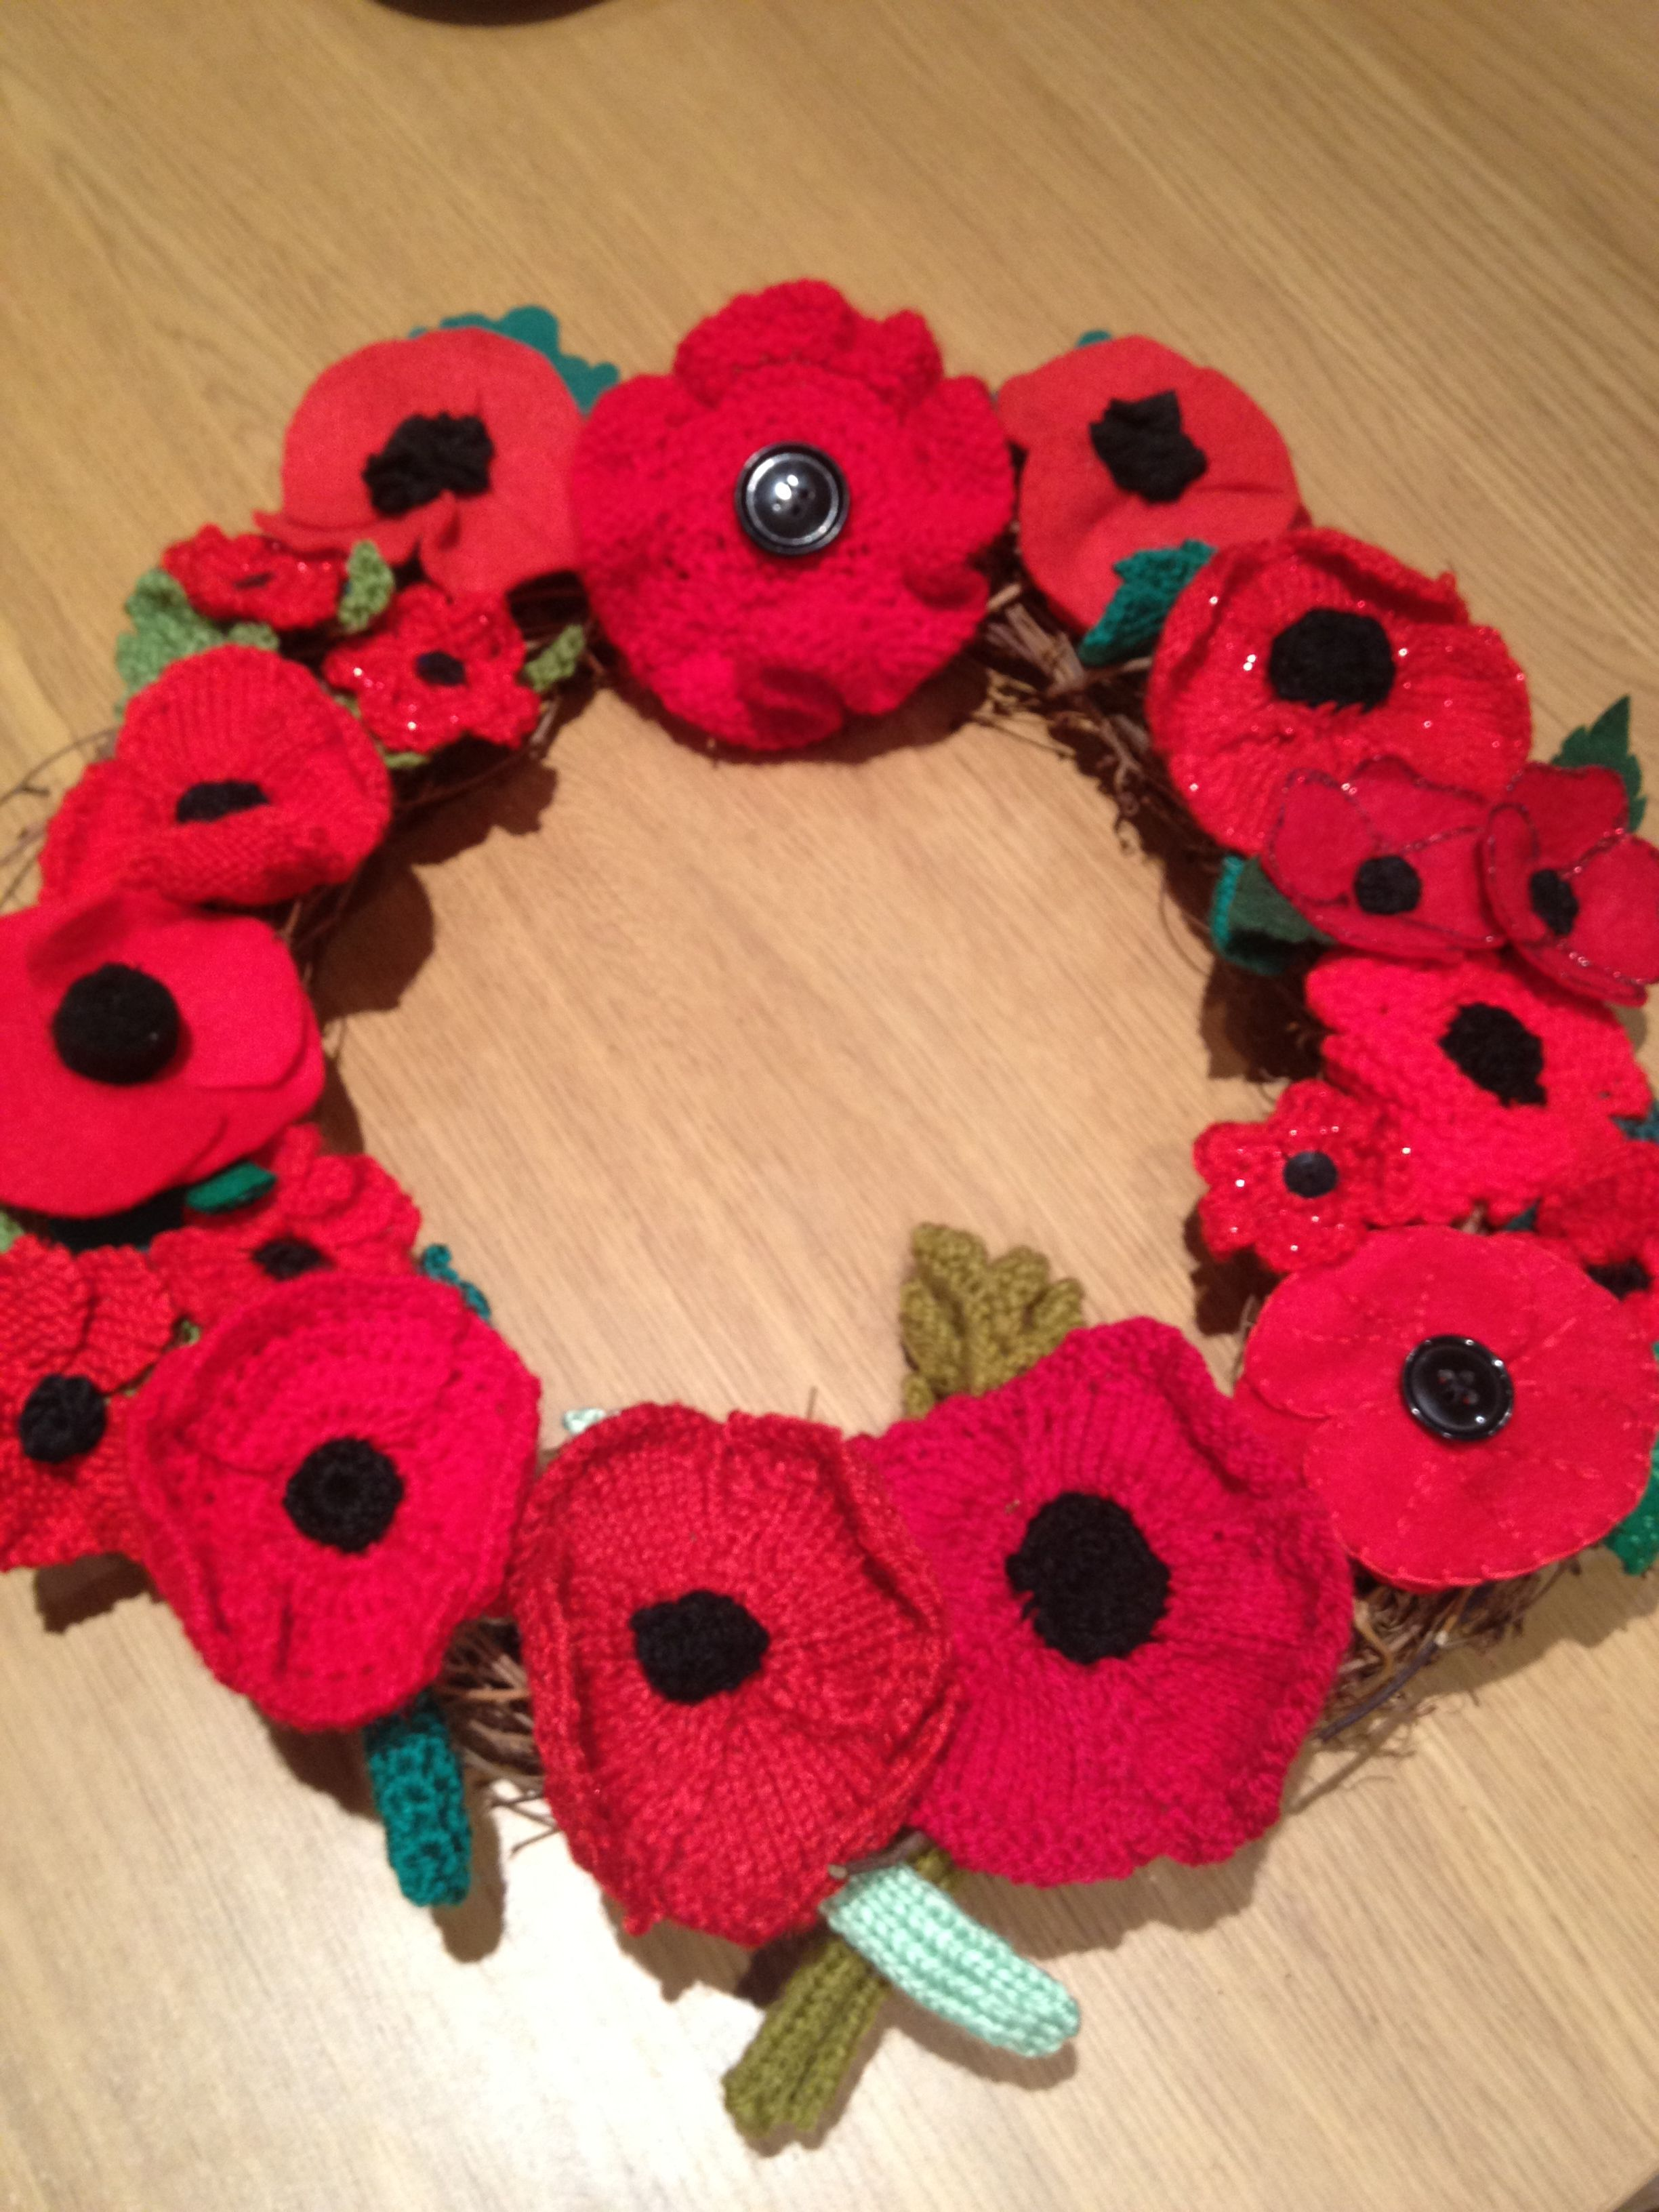 How to make a knitted or crochet poppy wreath | Crochet poppy, Free ...